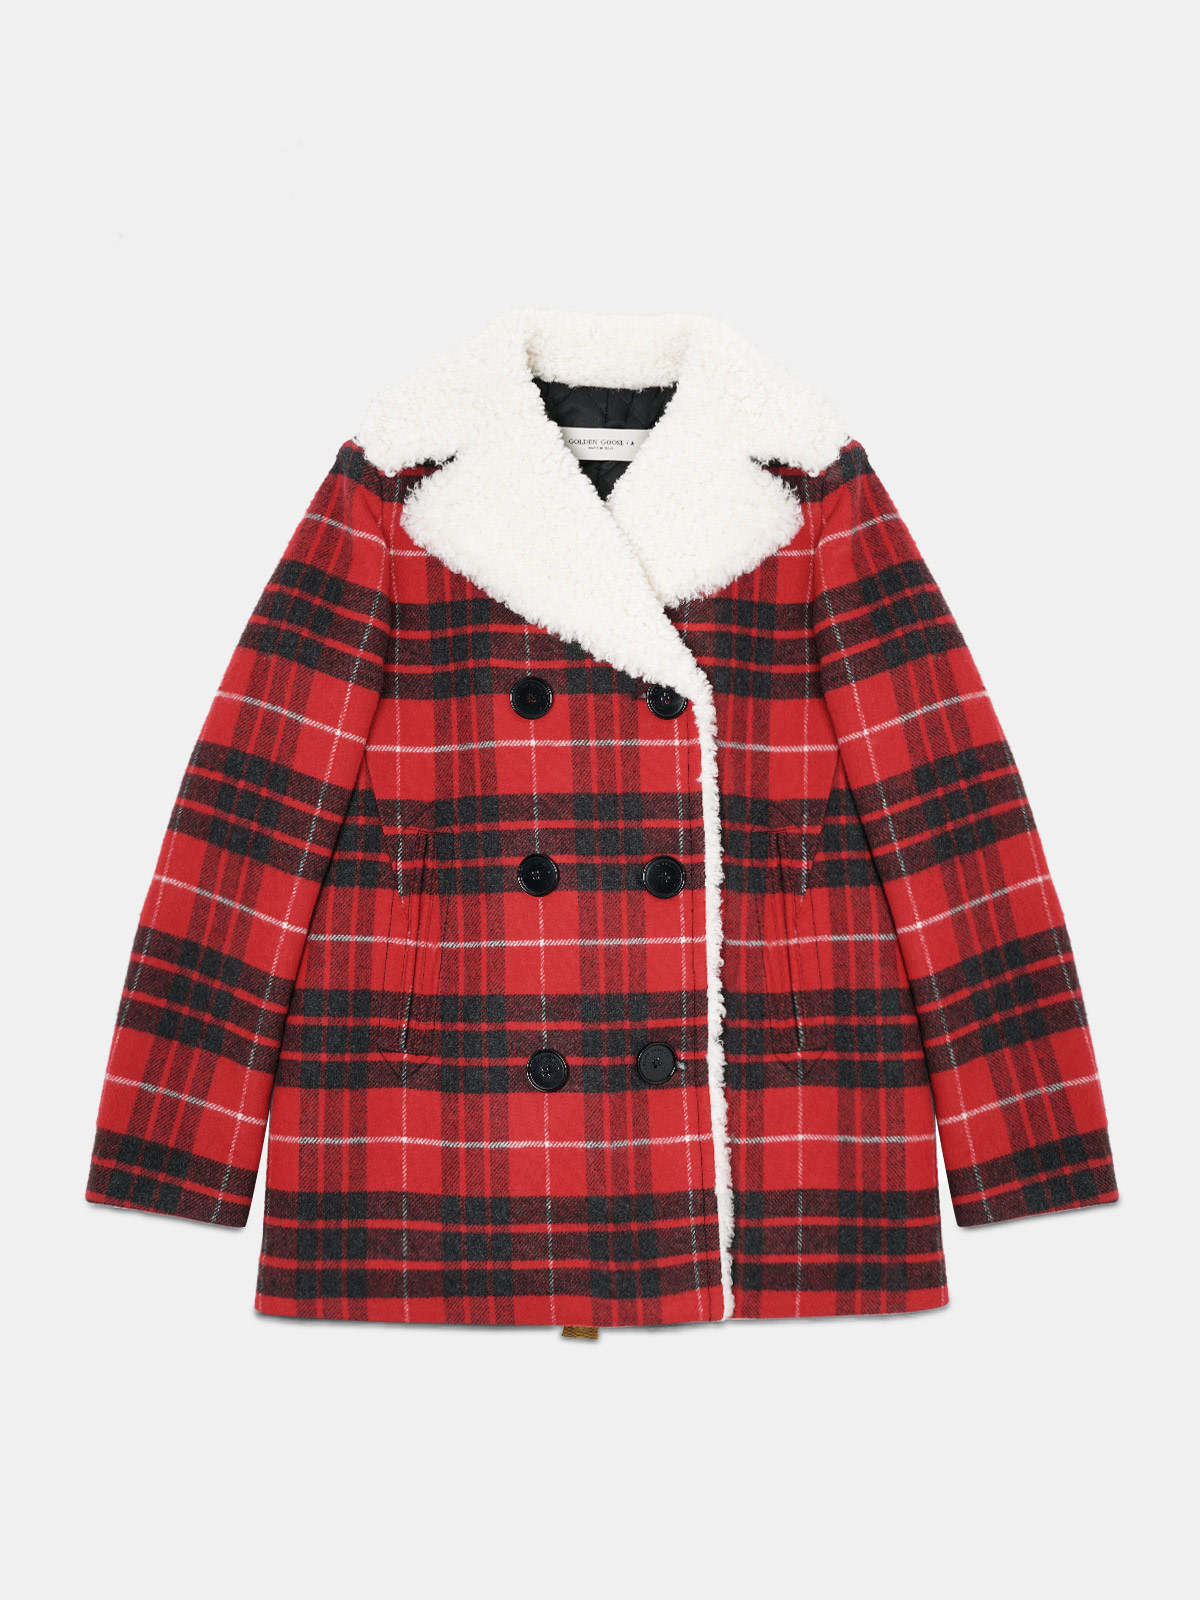 Golden Goose - Alida pea coat in tartan with shearling lining in